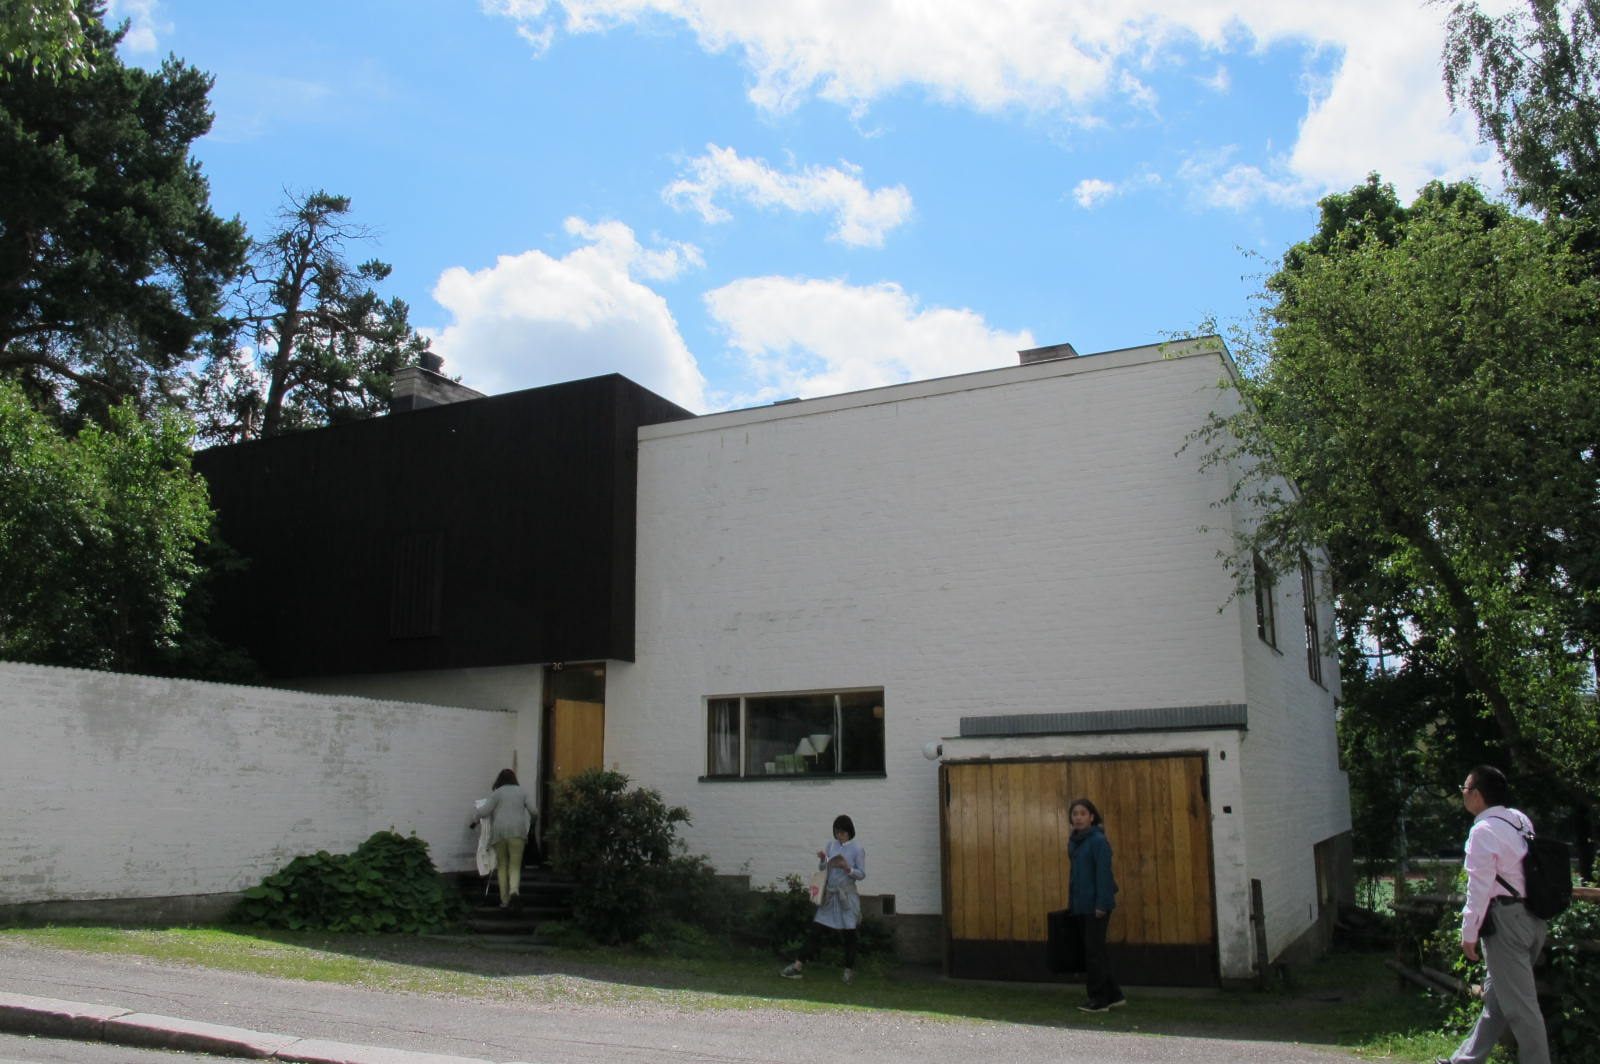 North/Street facade / Aalto House / 11 July 2015